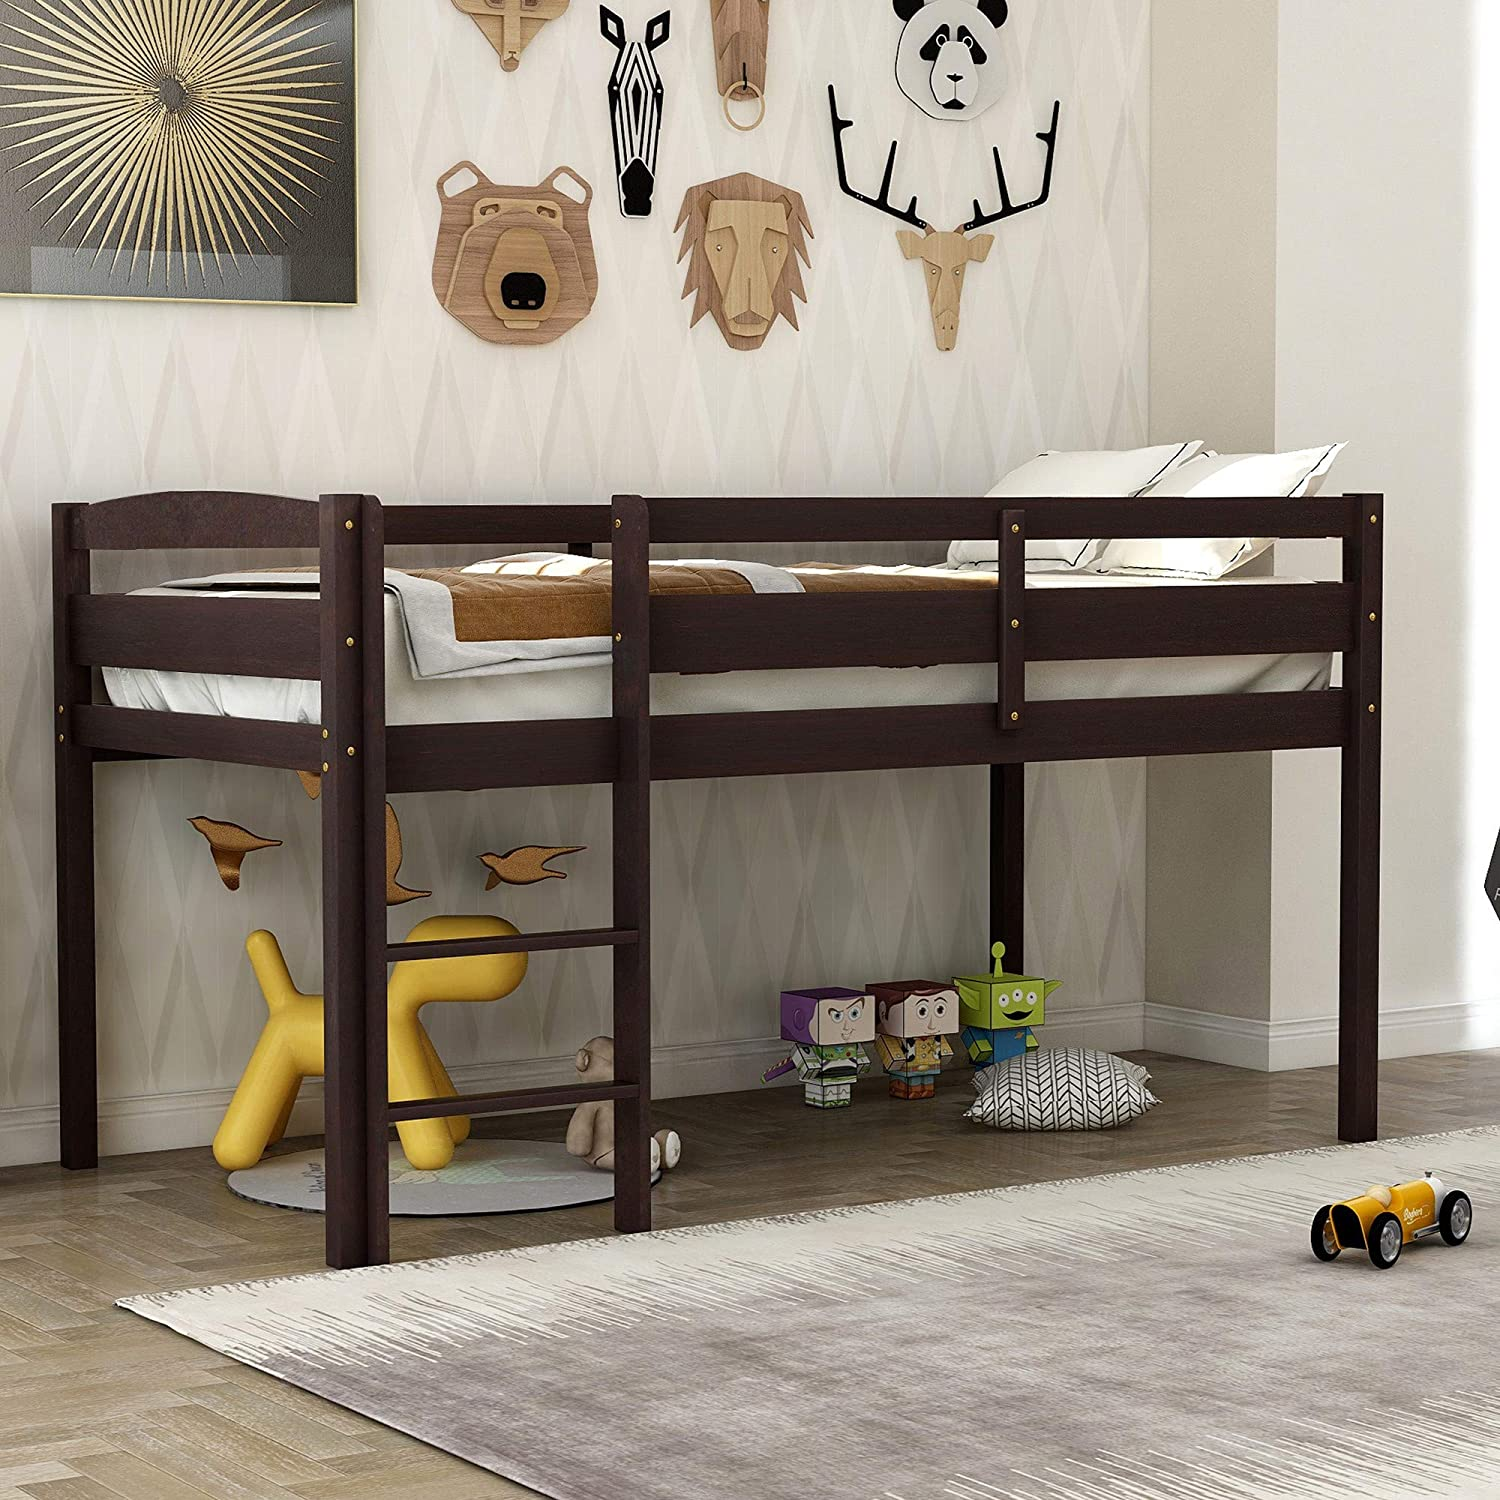 Twin Loft Bed Sacramento Ranking integrated 1st place Mall with Desk Frame Study Cab Low